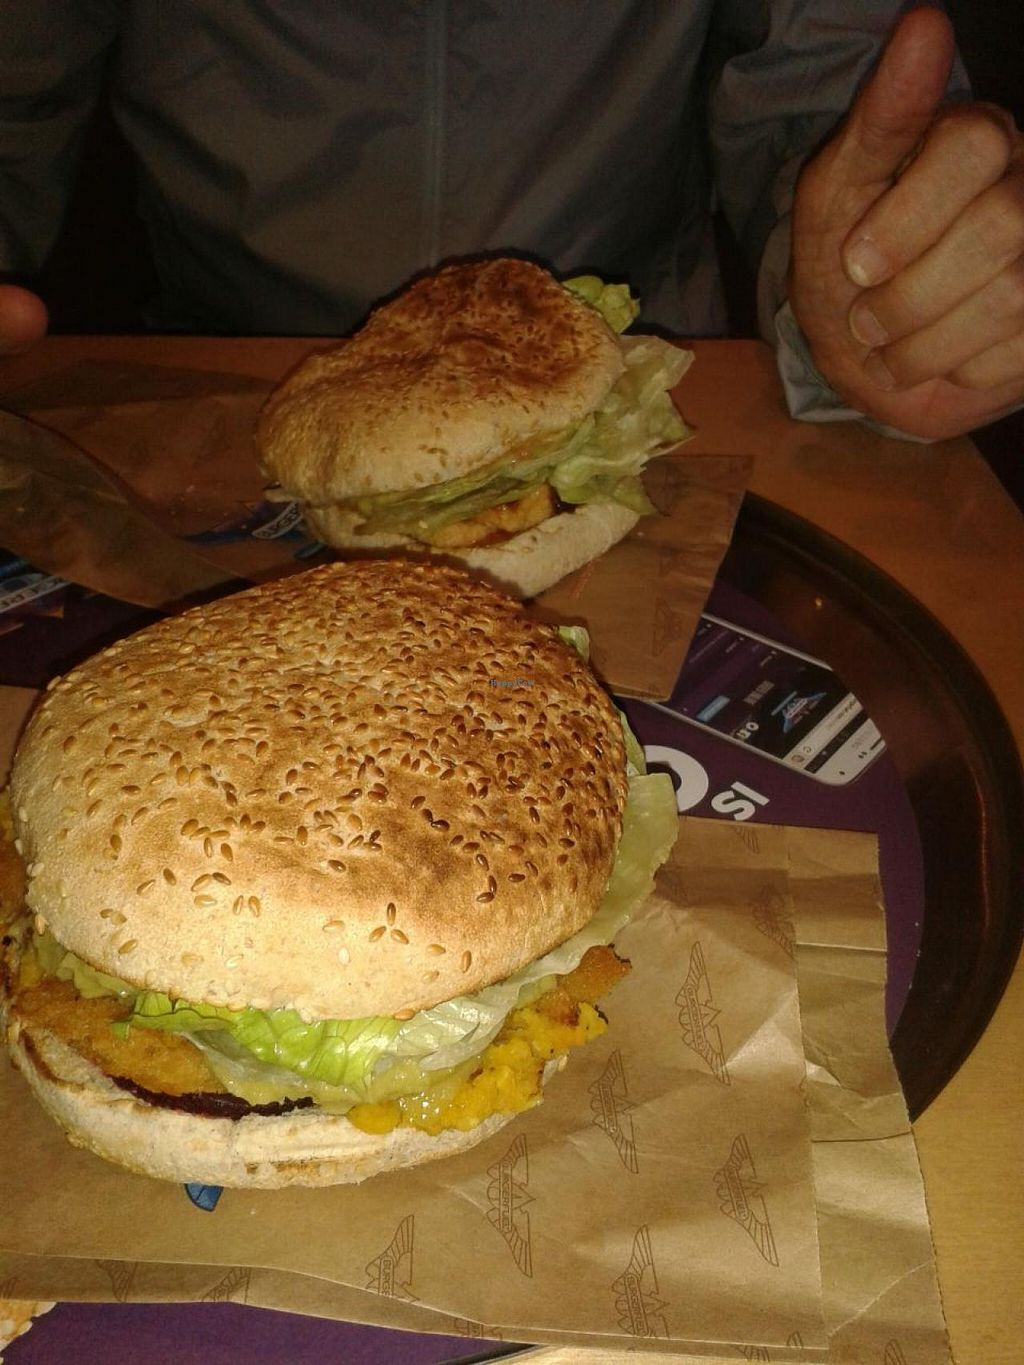 "Photo of BurgerFuel  by <a href=""/members/profile/Veganswife"">Veganswife</a> <br/>Pumpkin and lentil pat tie burger and tofu burger <br/> September 24, 2014  - <a href='/contact/abuse/image/33207/80983'>Report</a>"